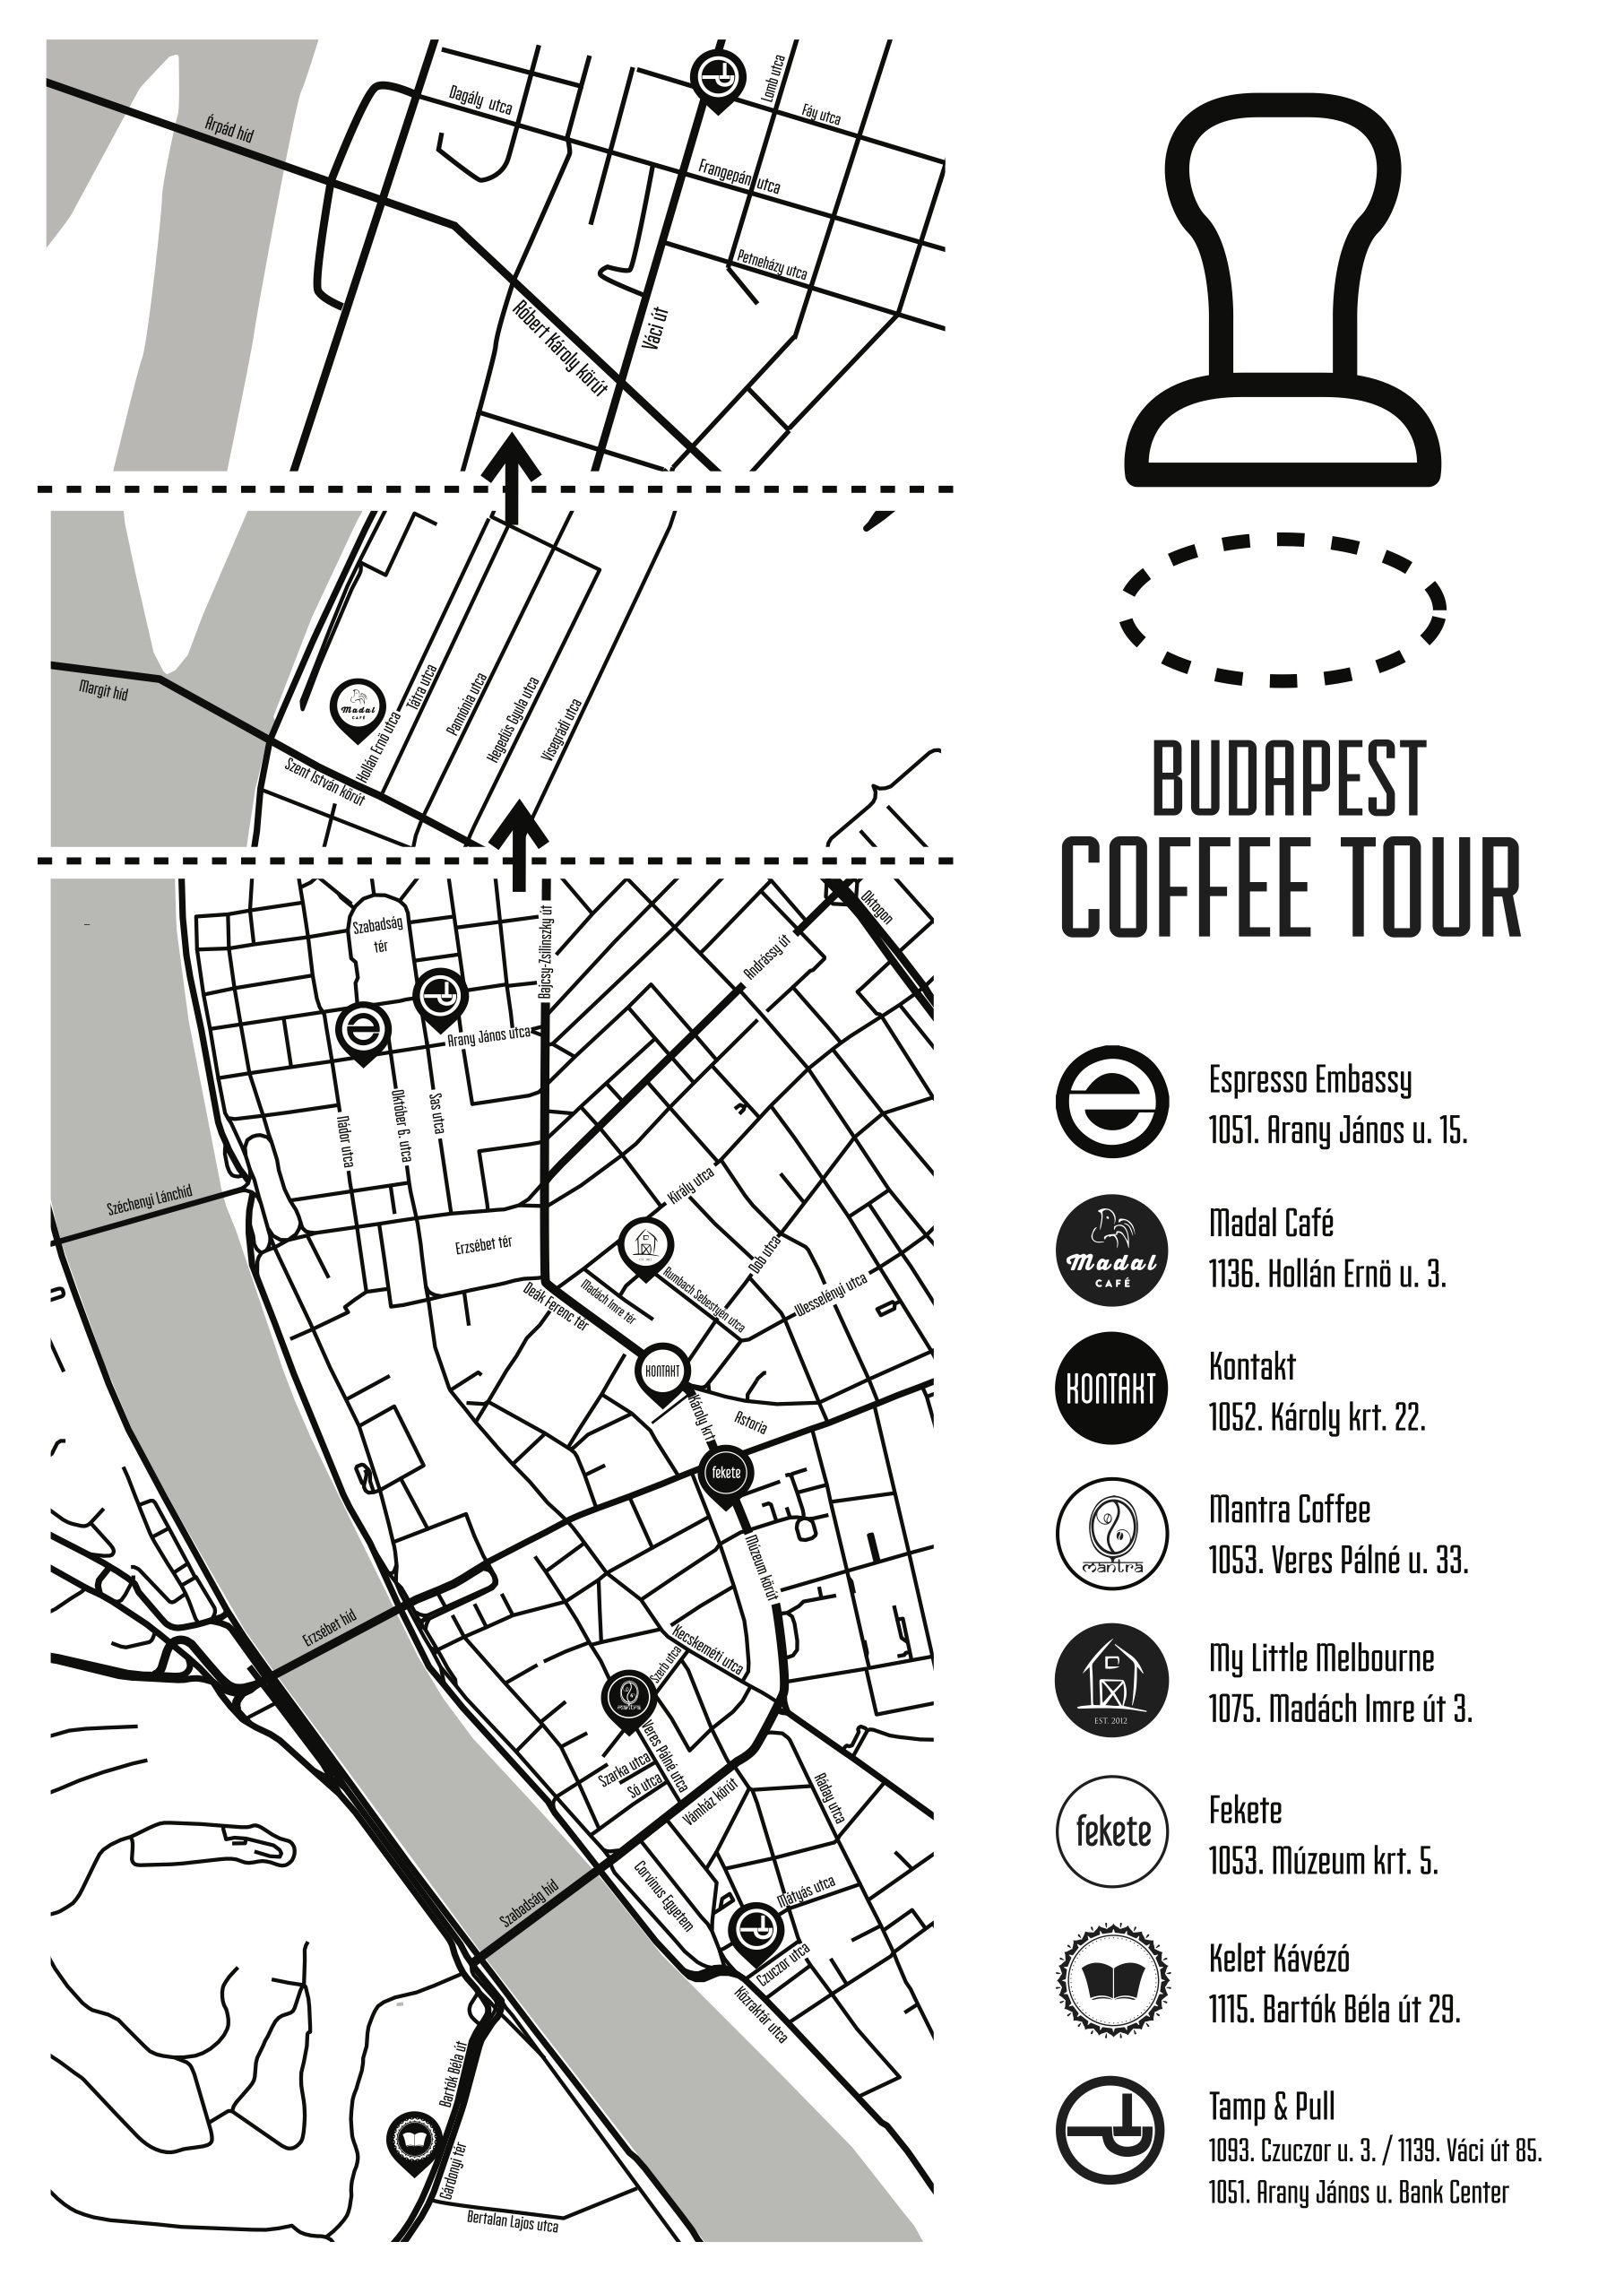 The Budapest Coffee Tour map.